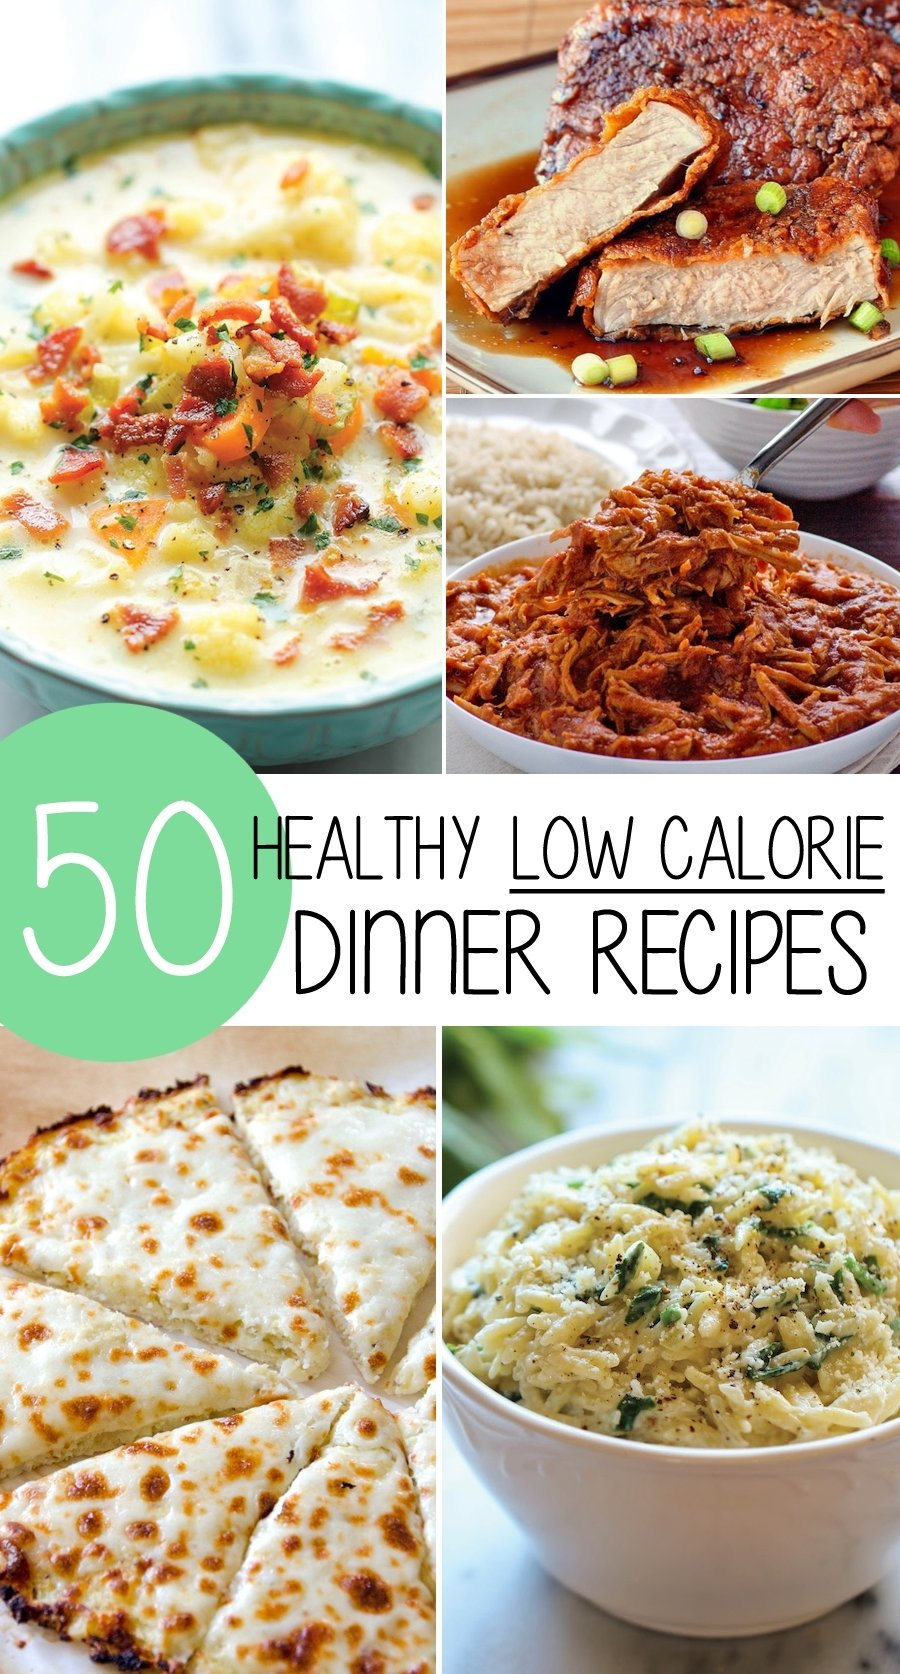 10 Wonderful Food Ideas For Dinner Tonight 50 healthy low calorie weight loss dinner recipes 6 2020